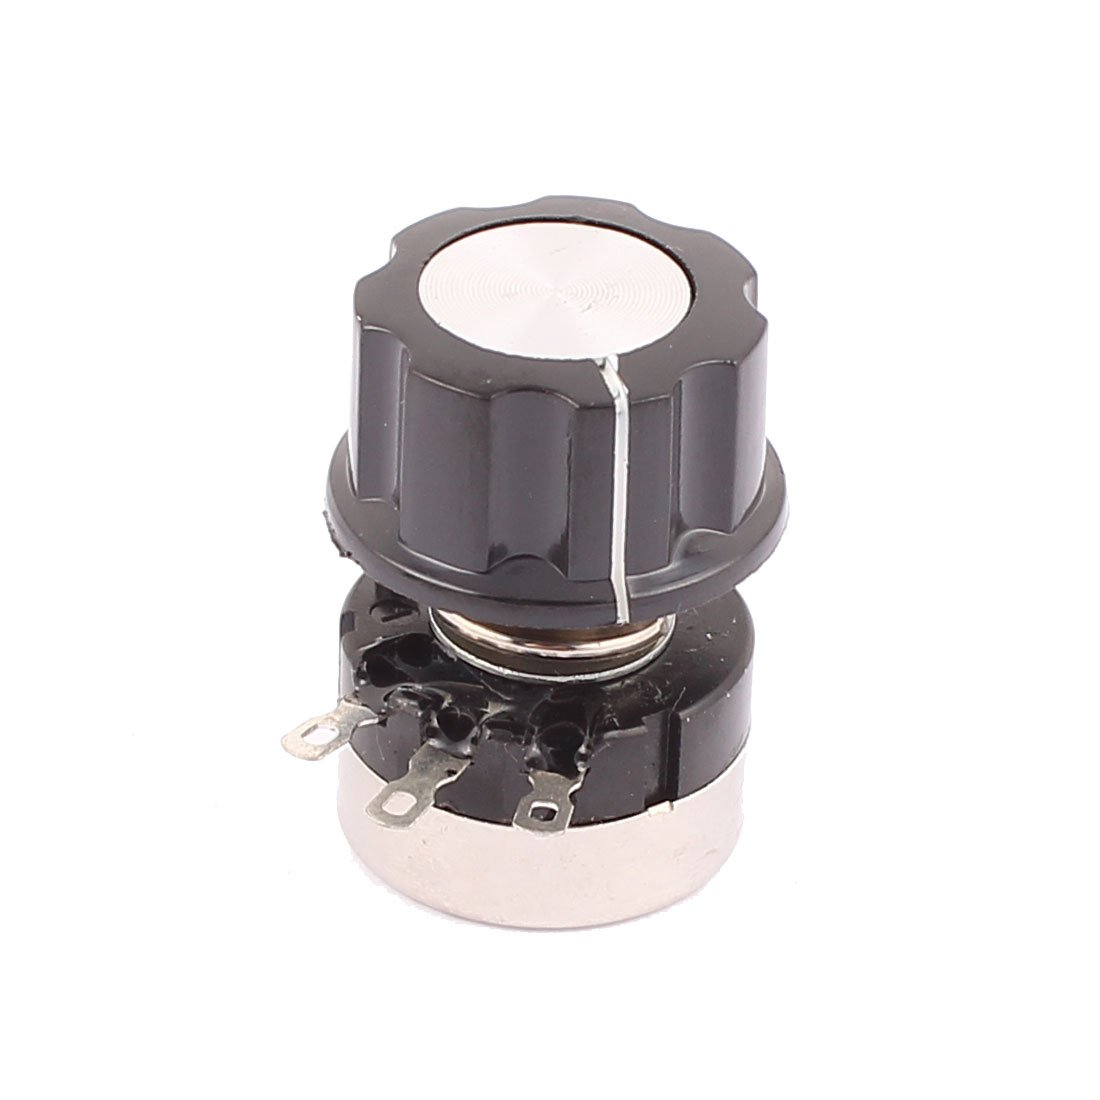 uxcell 3 Pin B502 Rotary Wirewound Potentiometer 5K Ohm Adjustable Resistance